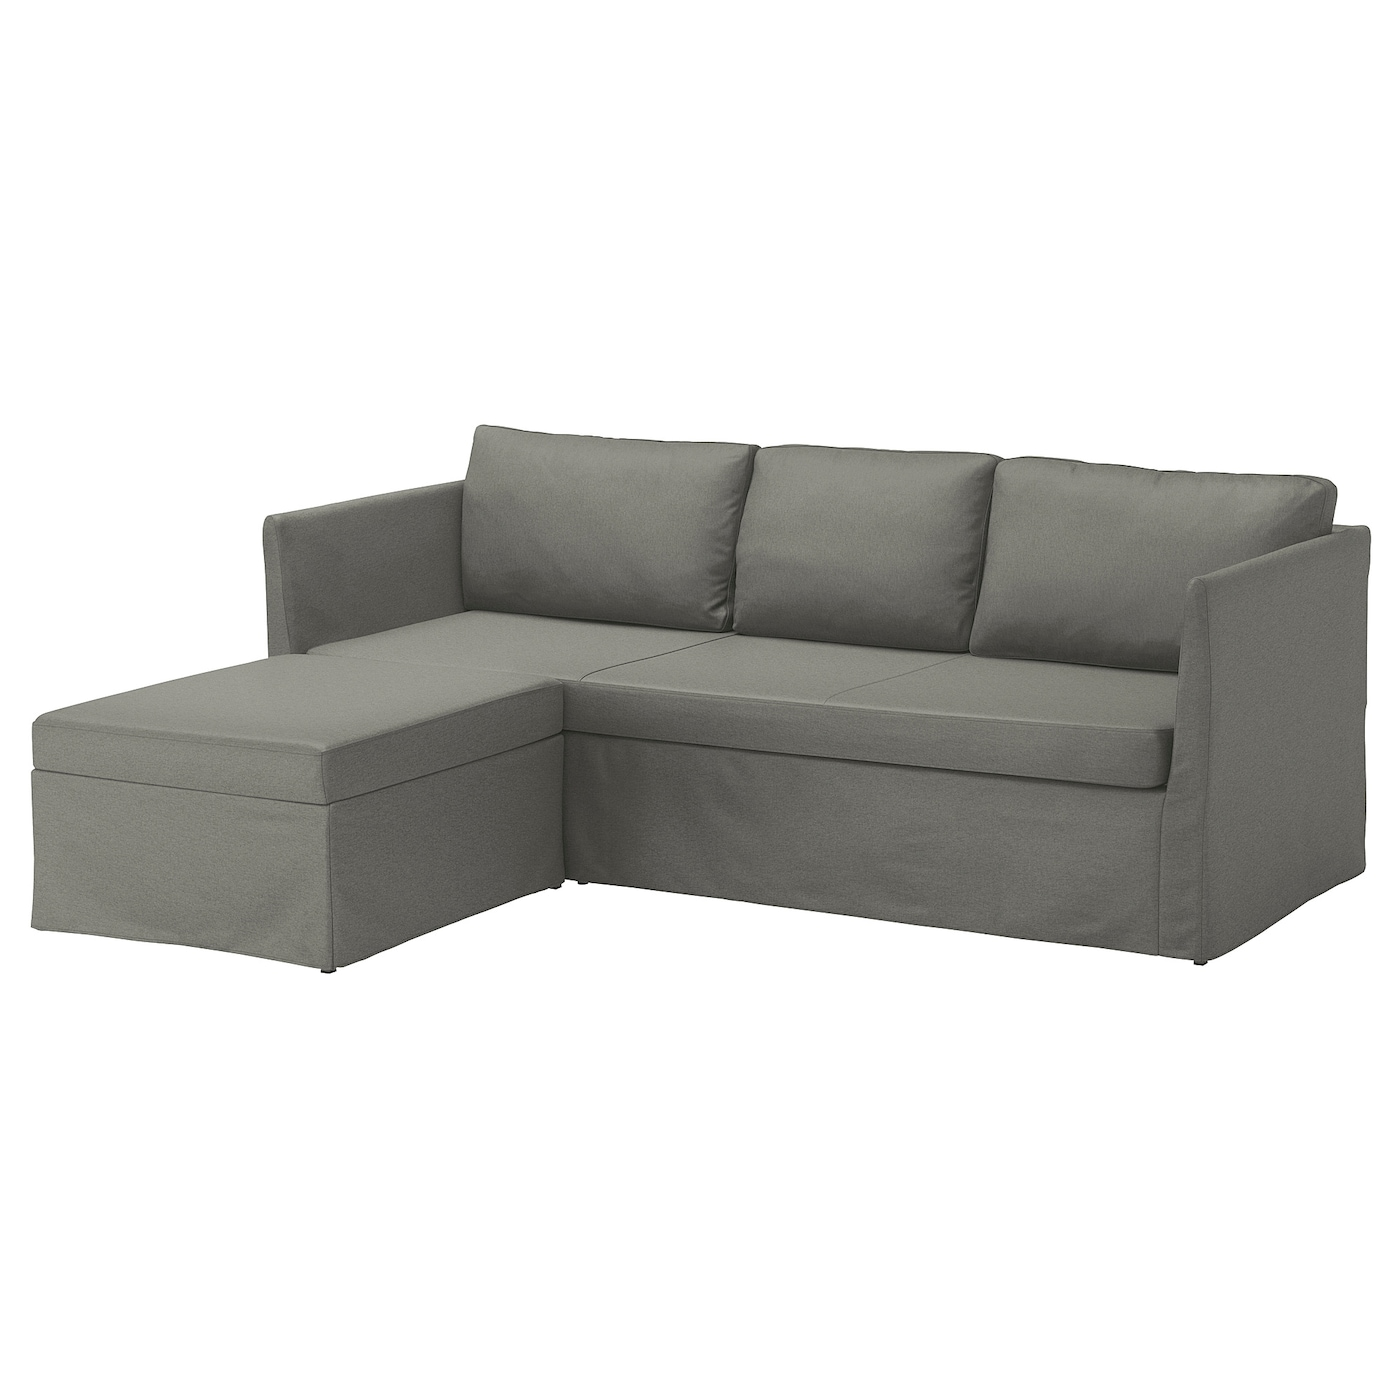 Incroyable IKEA BRÅTHULT Corner Sofa Bed You Sit Comfortably Thanks To The Resilient  Foam And Springy